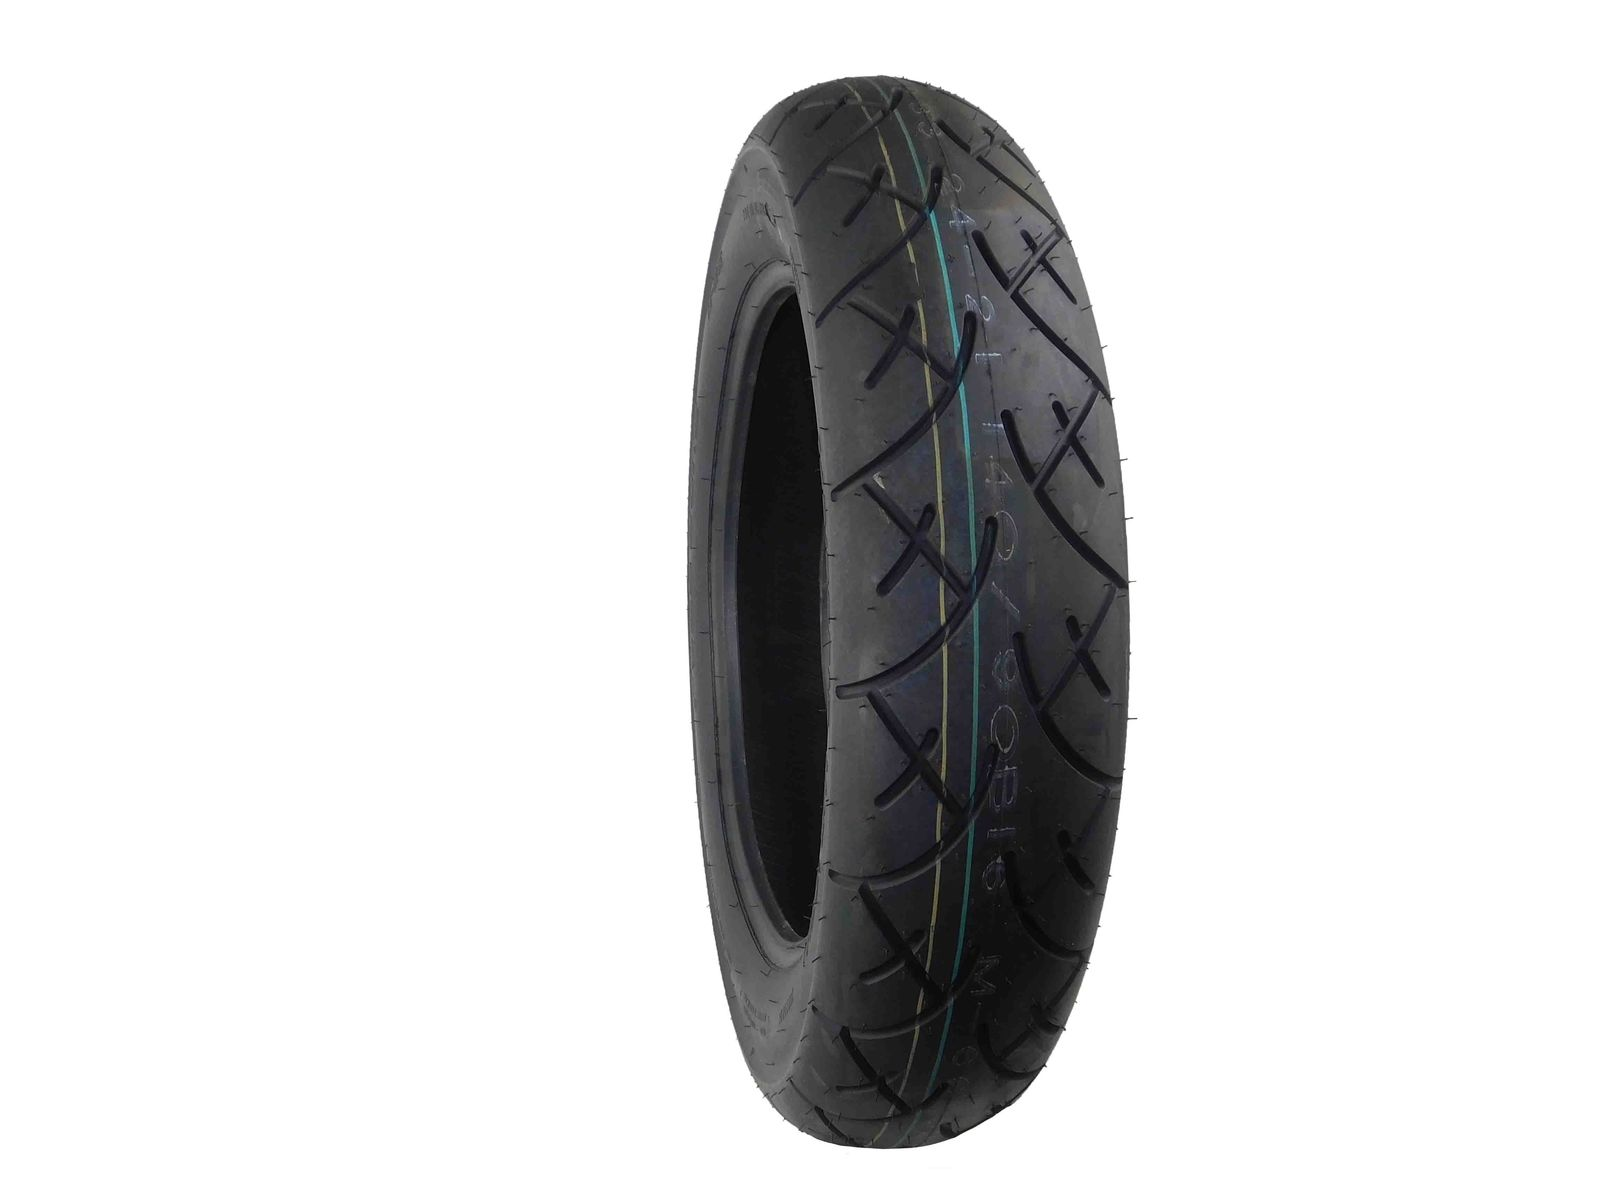 Full-Bore-110-90-19-Front-140-90-16-Rear-Set-Cruiser-Motorcycle-Tires-image-4